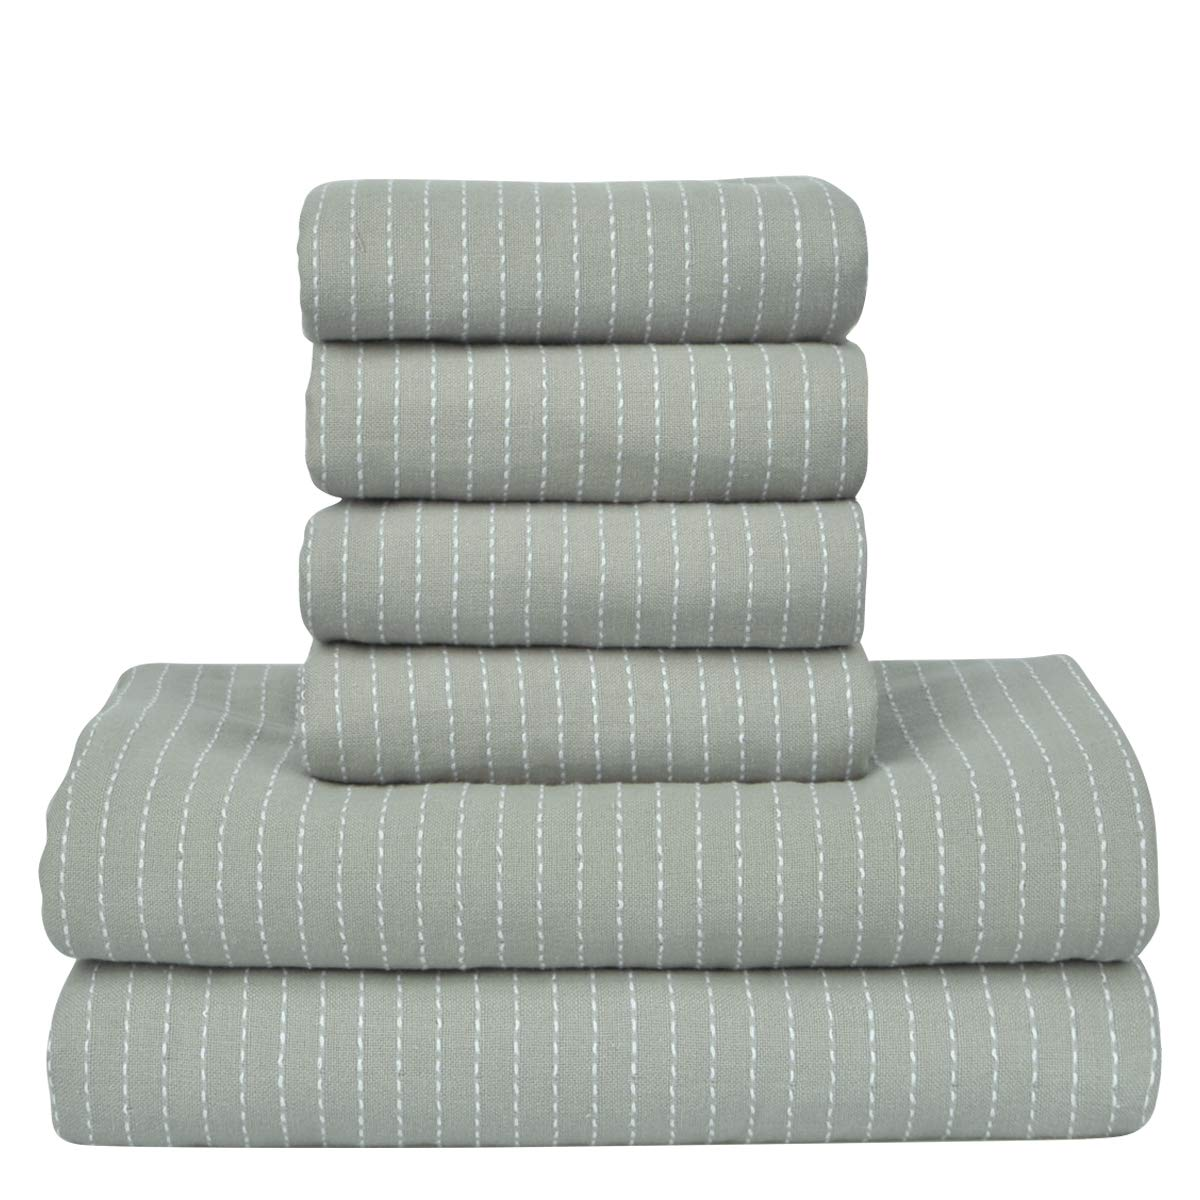 SEMARO Towel Set Hotel & Spa 6 pack Bath Towel Super Soft and Highly Absorbent 100% Cotton (Pale-green) by SEMARO